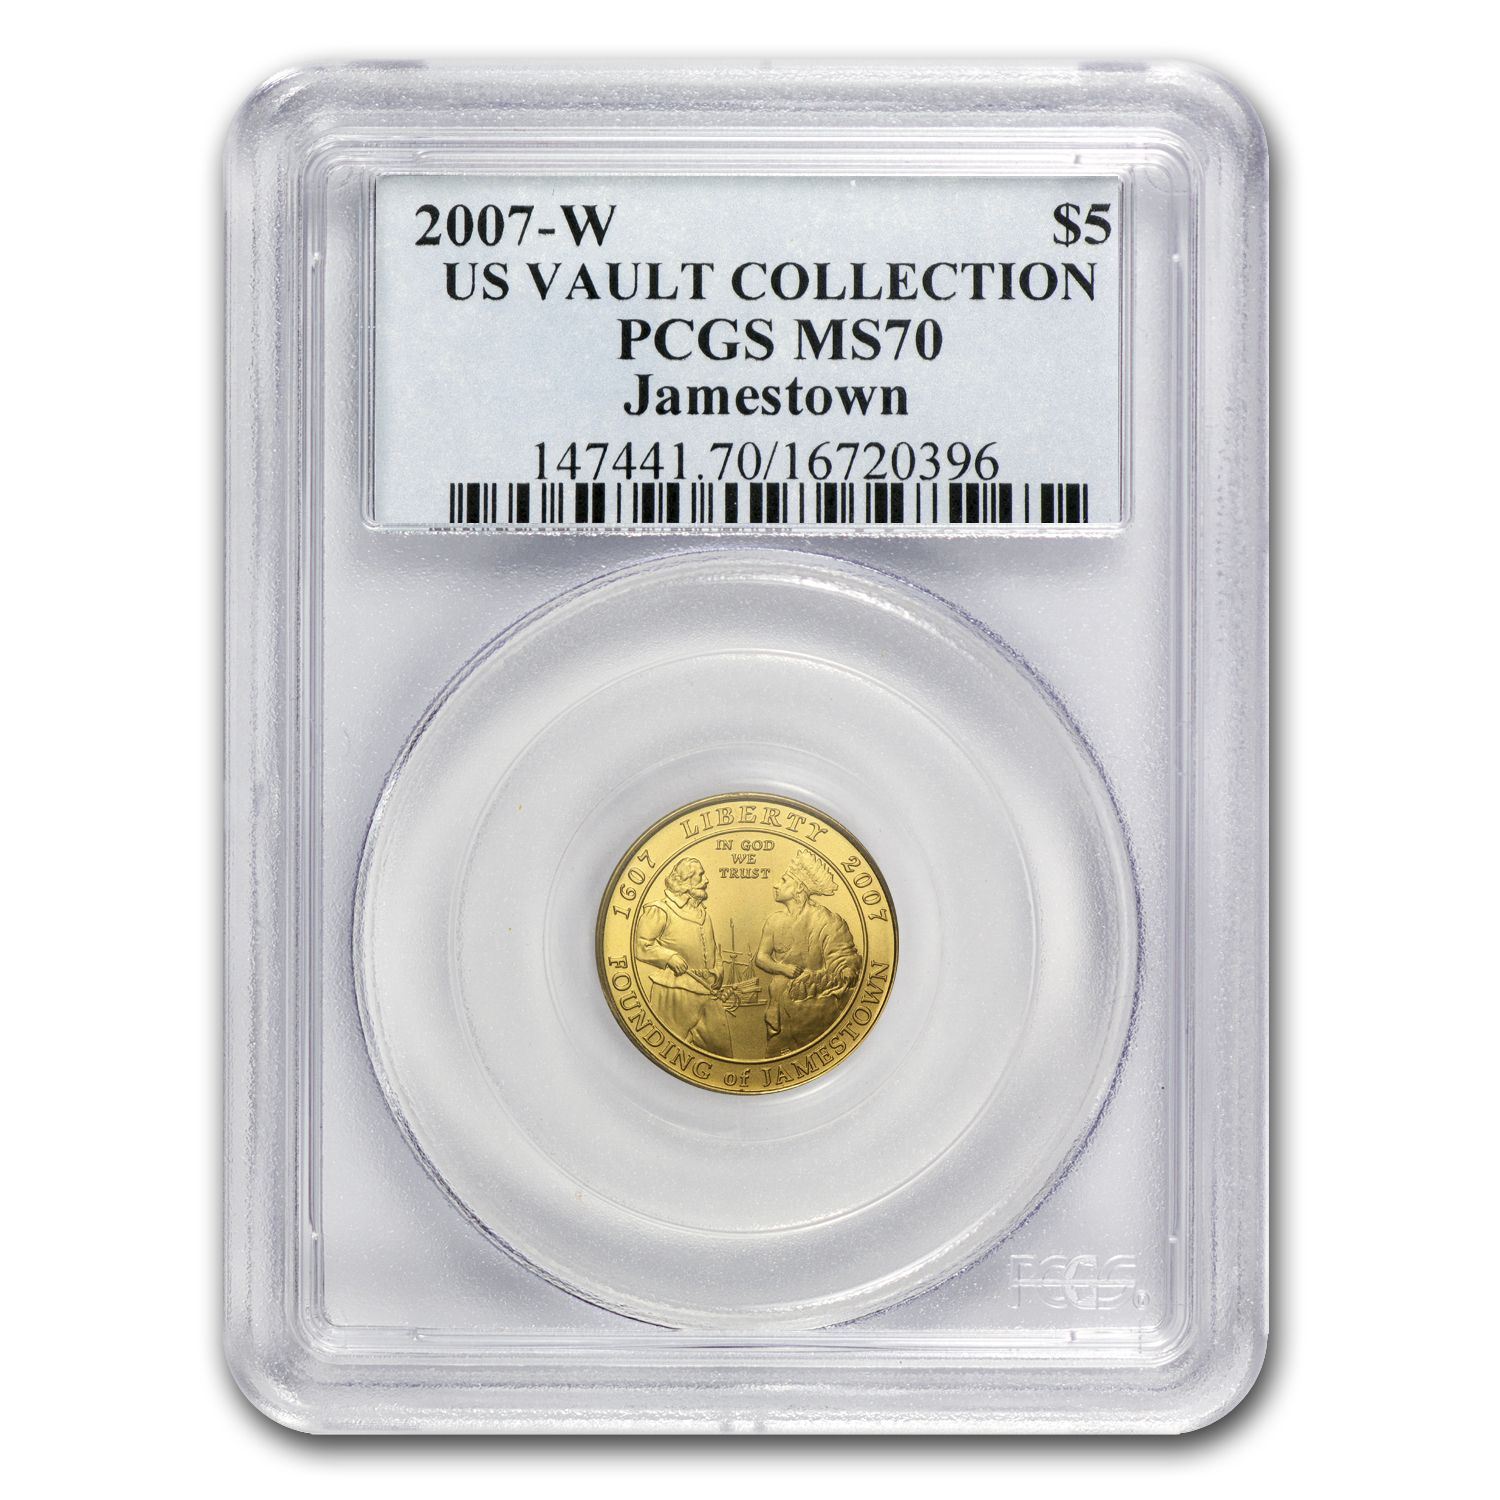 2007-W $5 Gold Commemorative Jamestown MS-70 PCGS